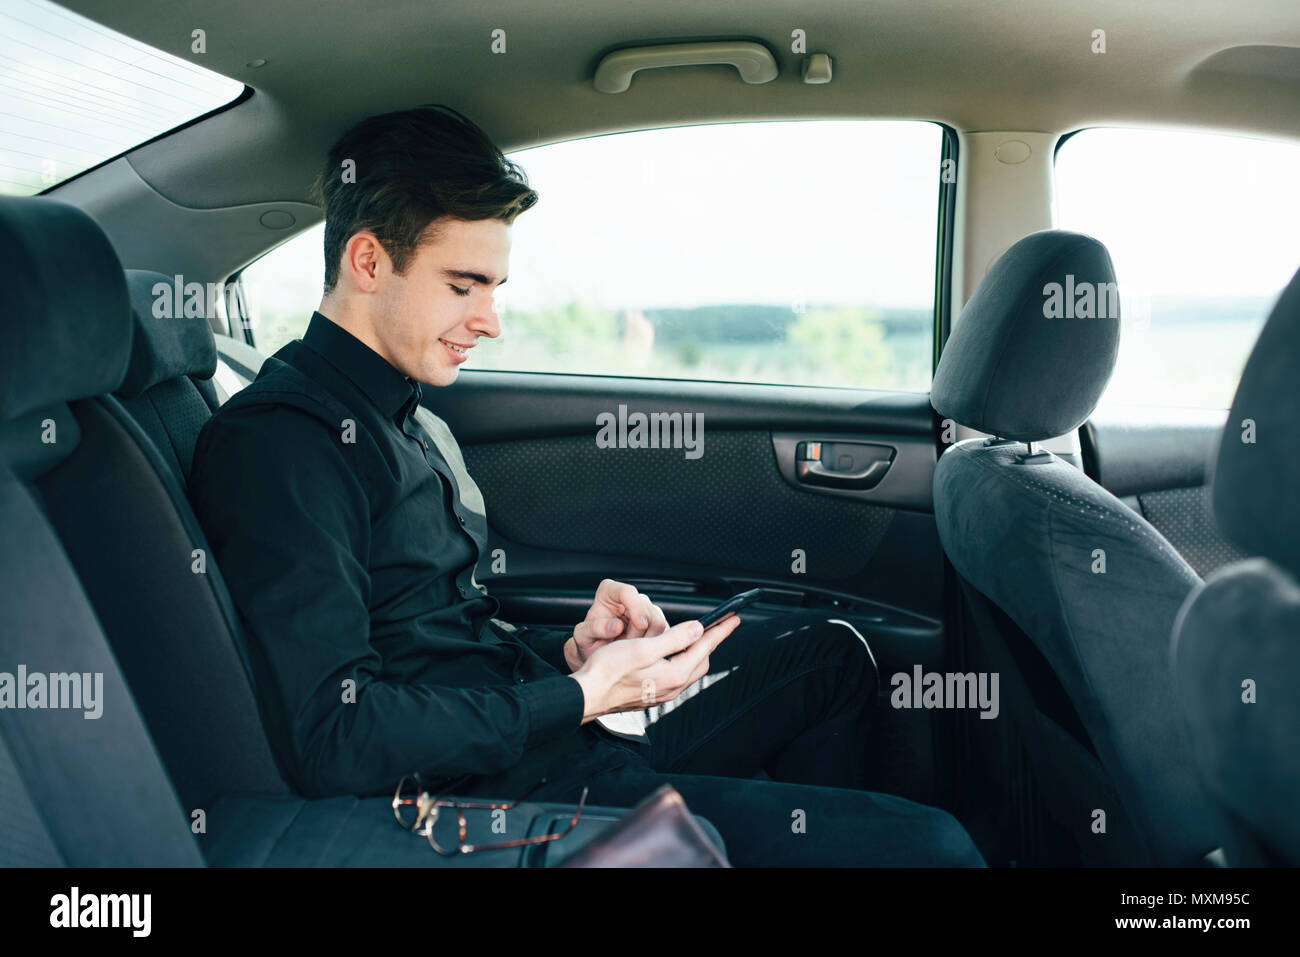 A young, handsome teenage boy sits on a passenger car seat and decides by phone - Stock Image